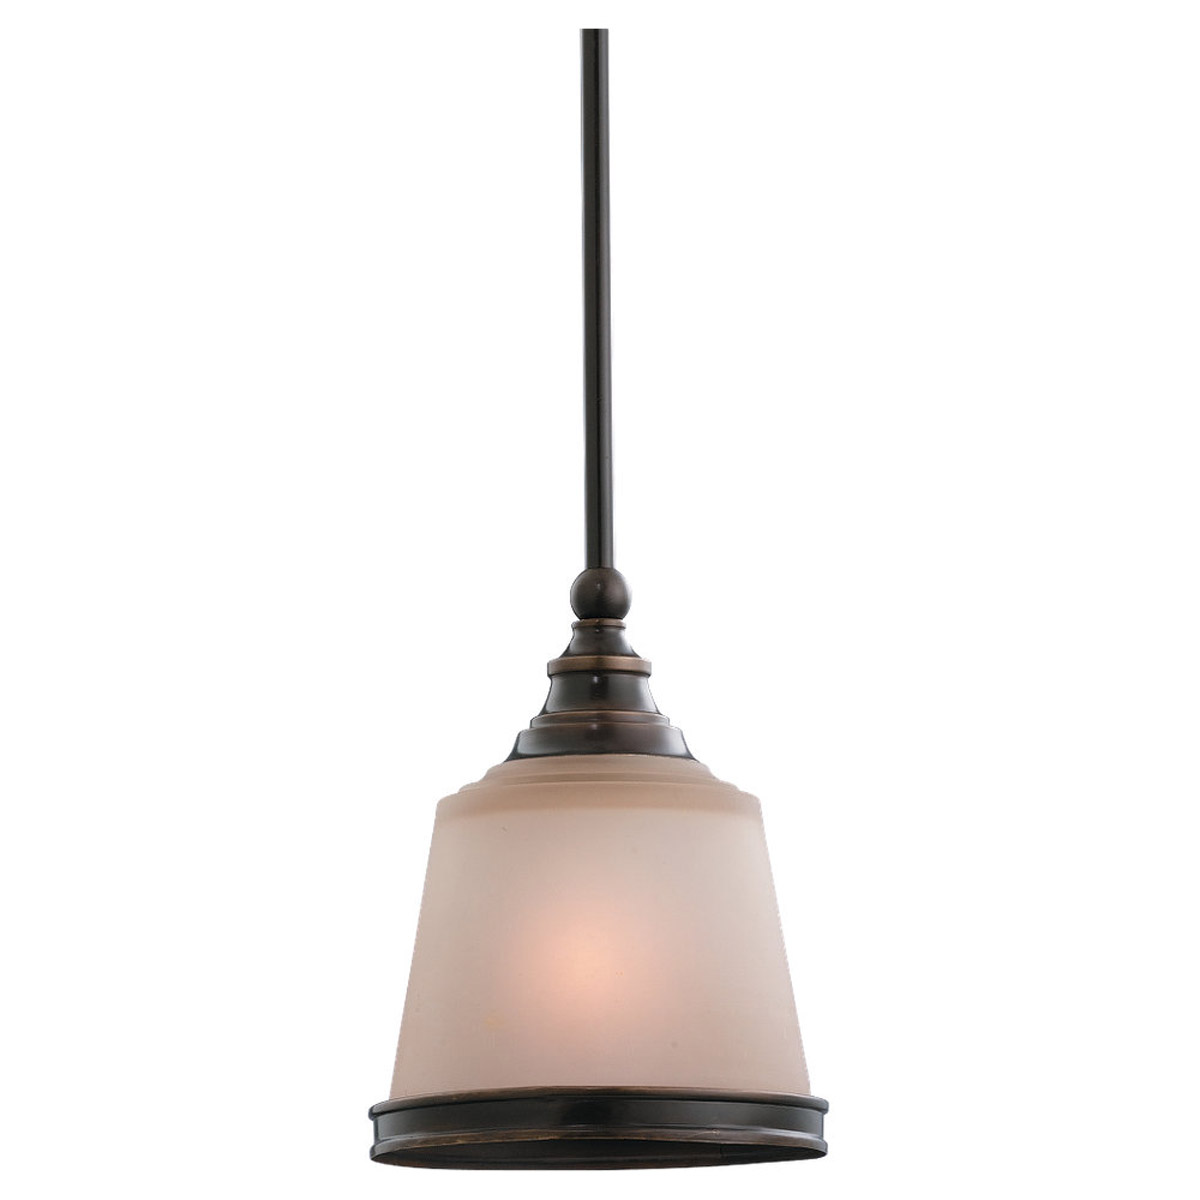 Sea Gull Lighting Warwick 1 Light Mini Pendant in Vintage Bronze 61330BLE-825 photo